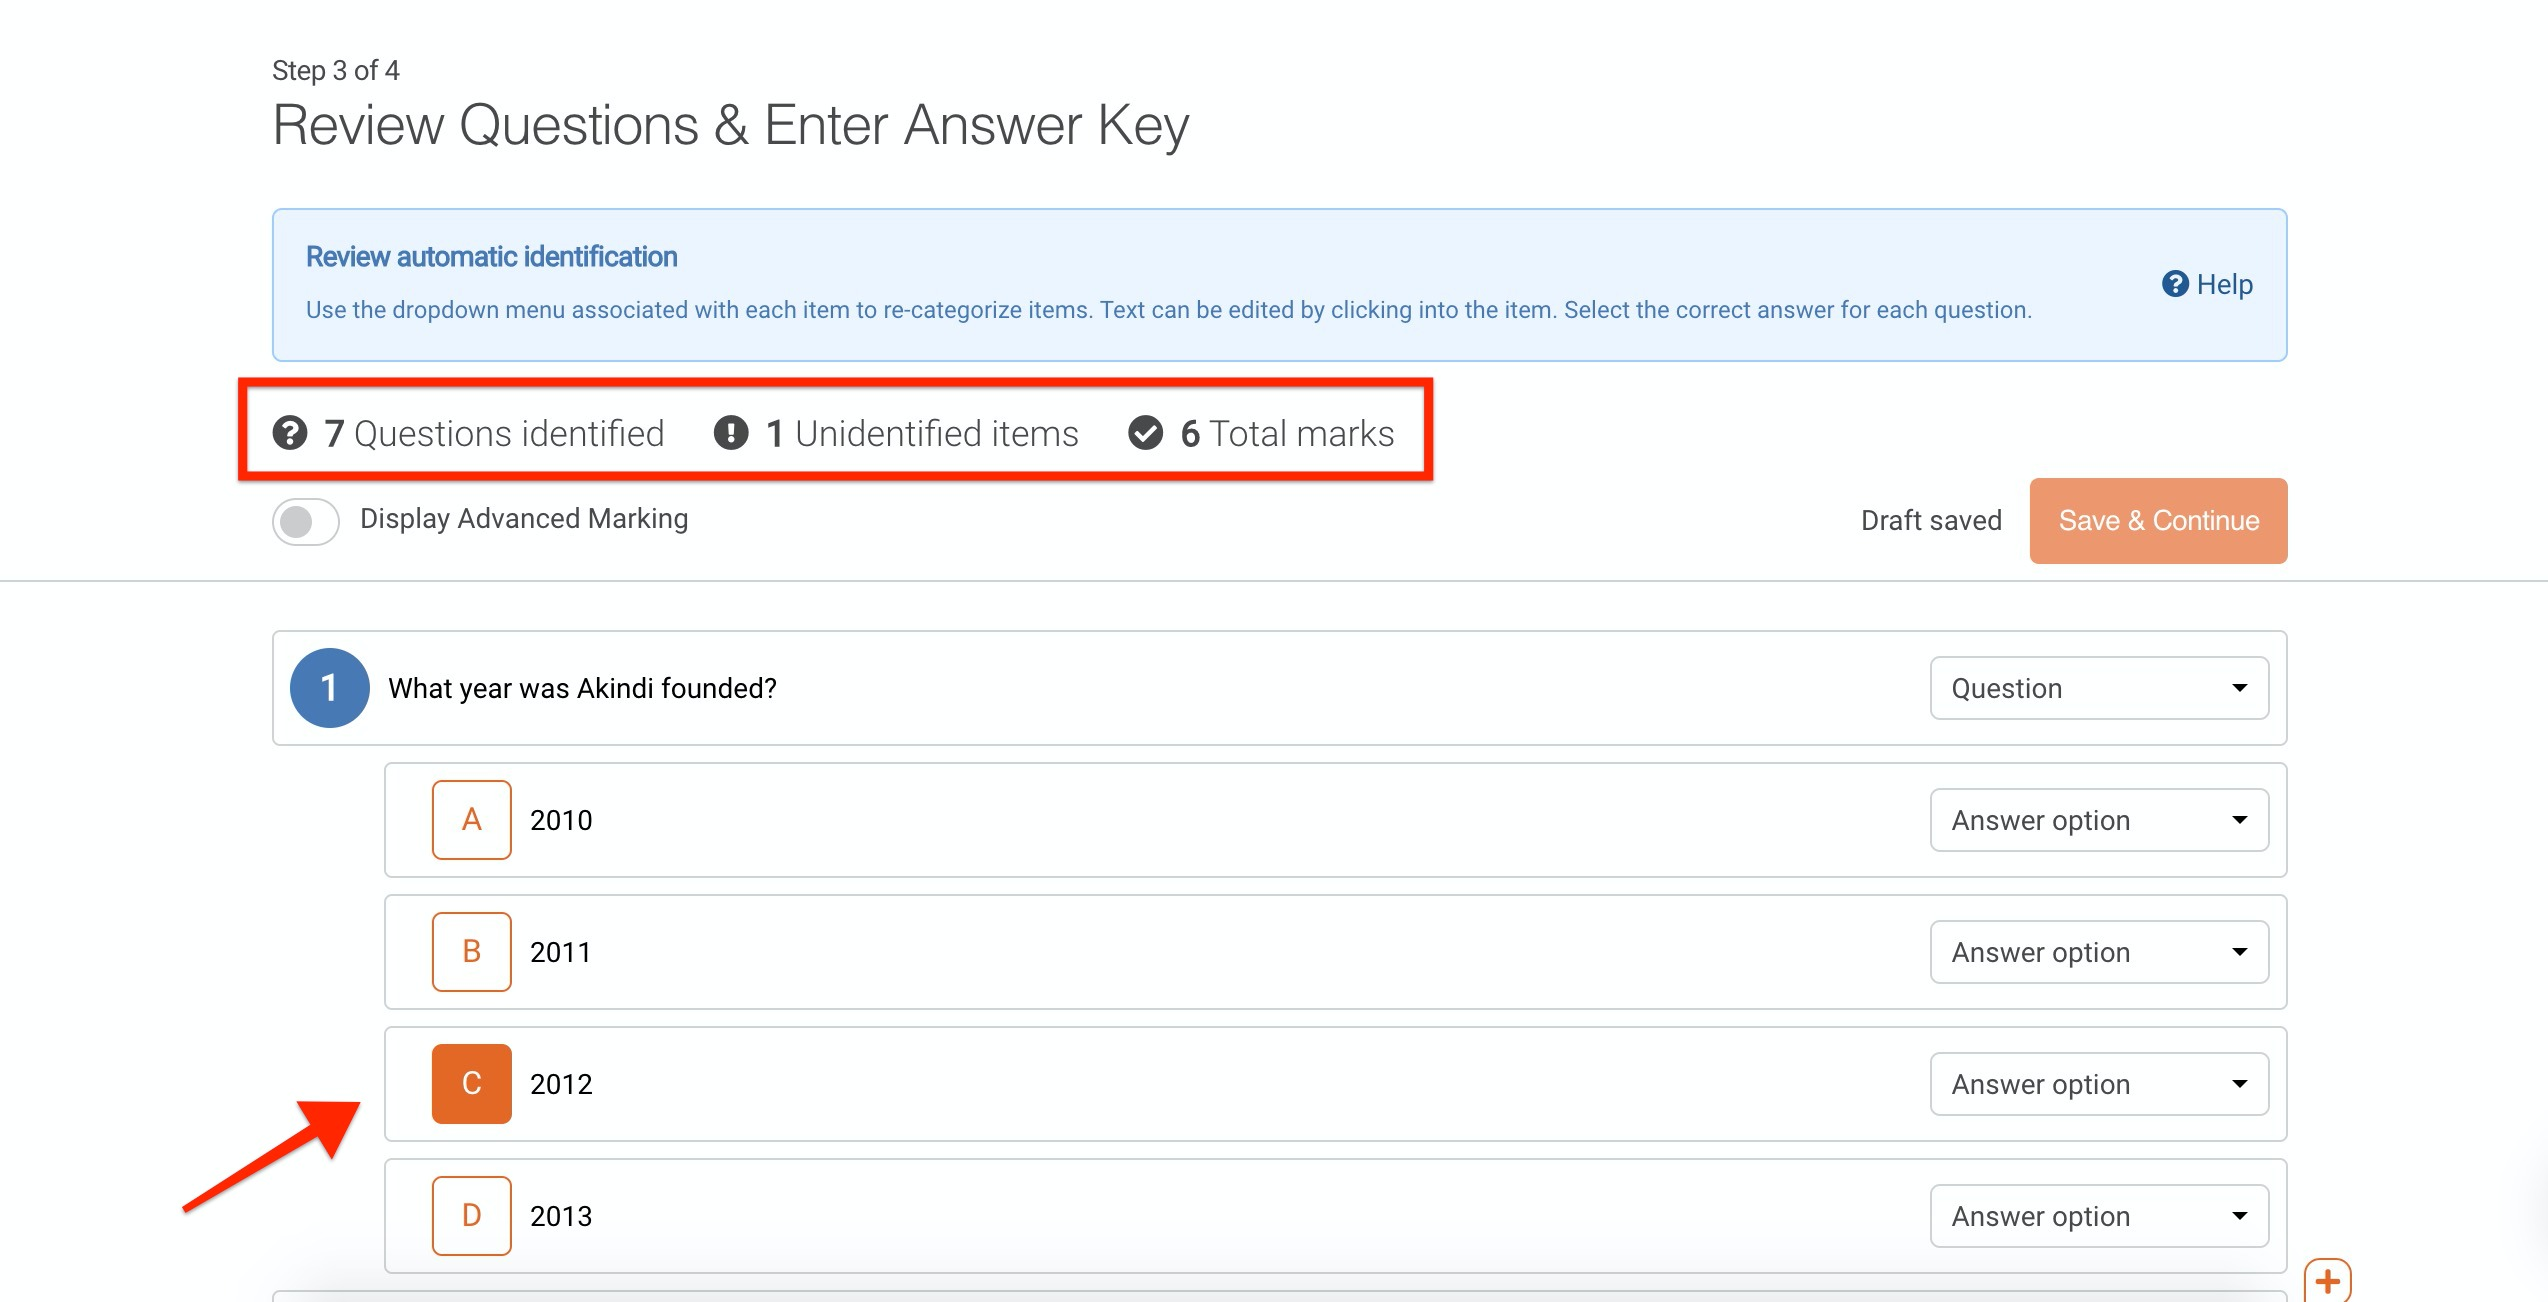 Image: Review & Enter Answer Key page